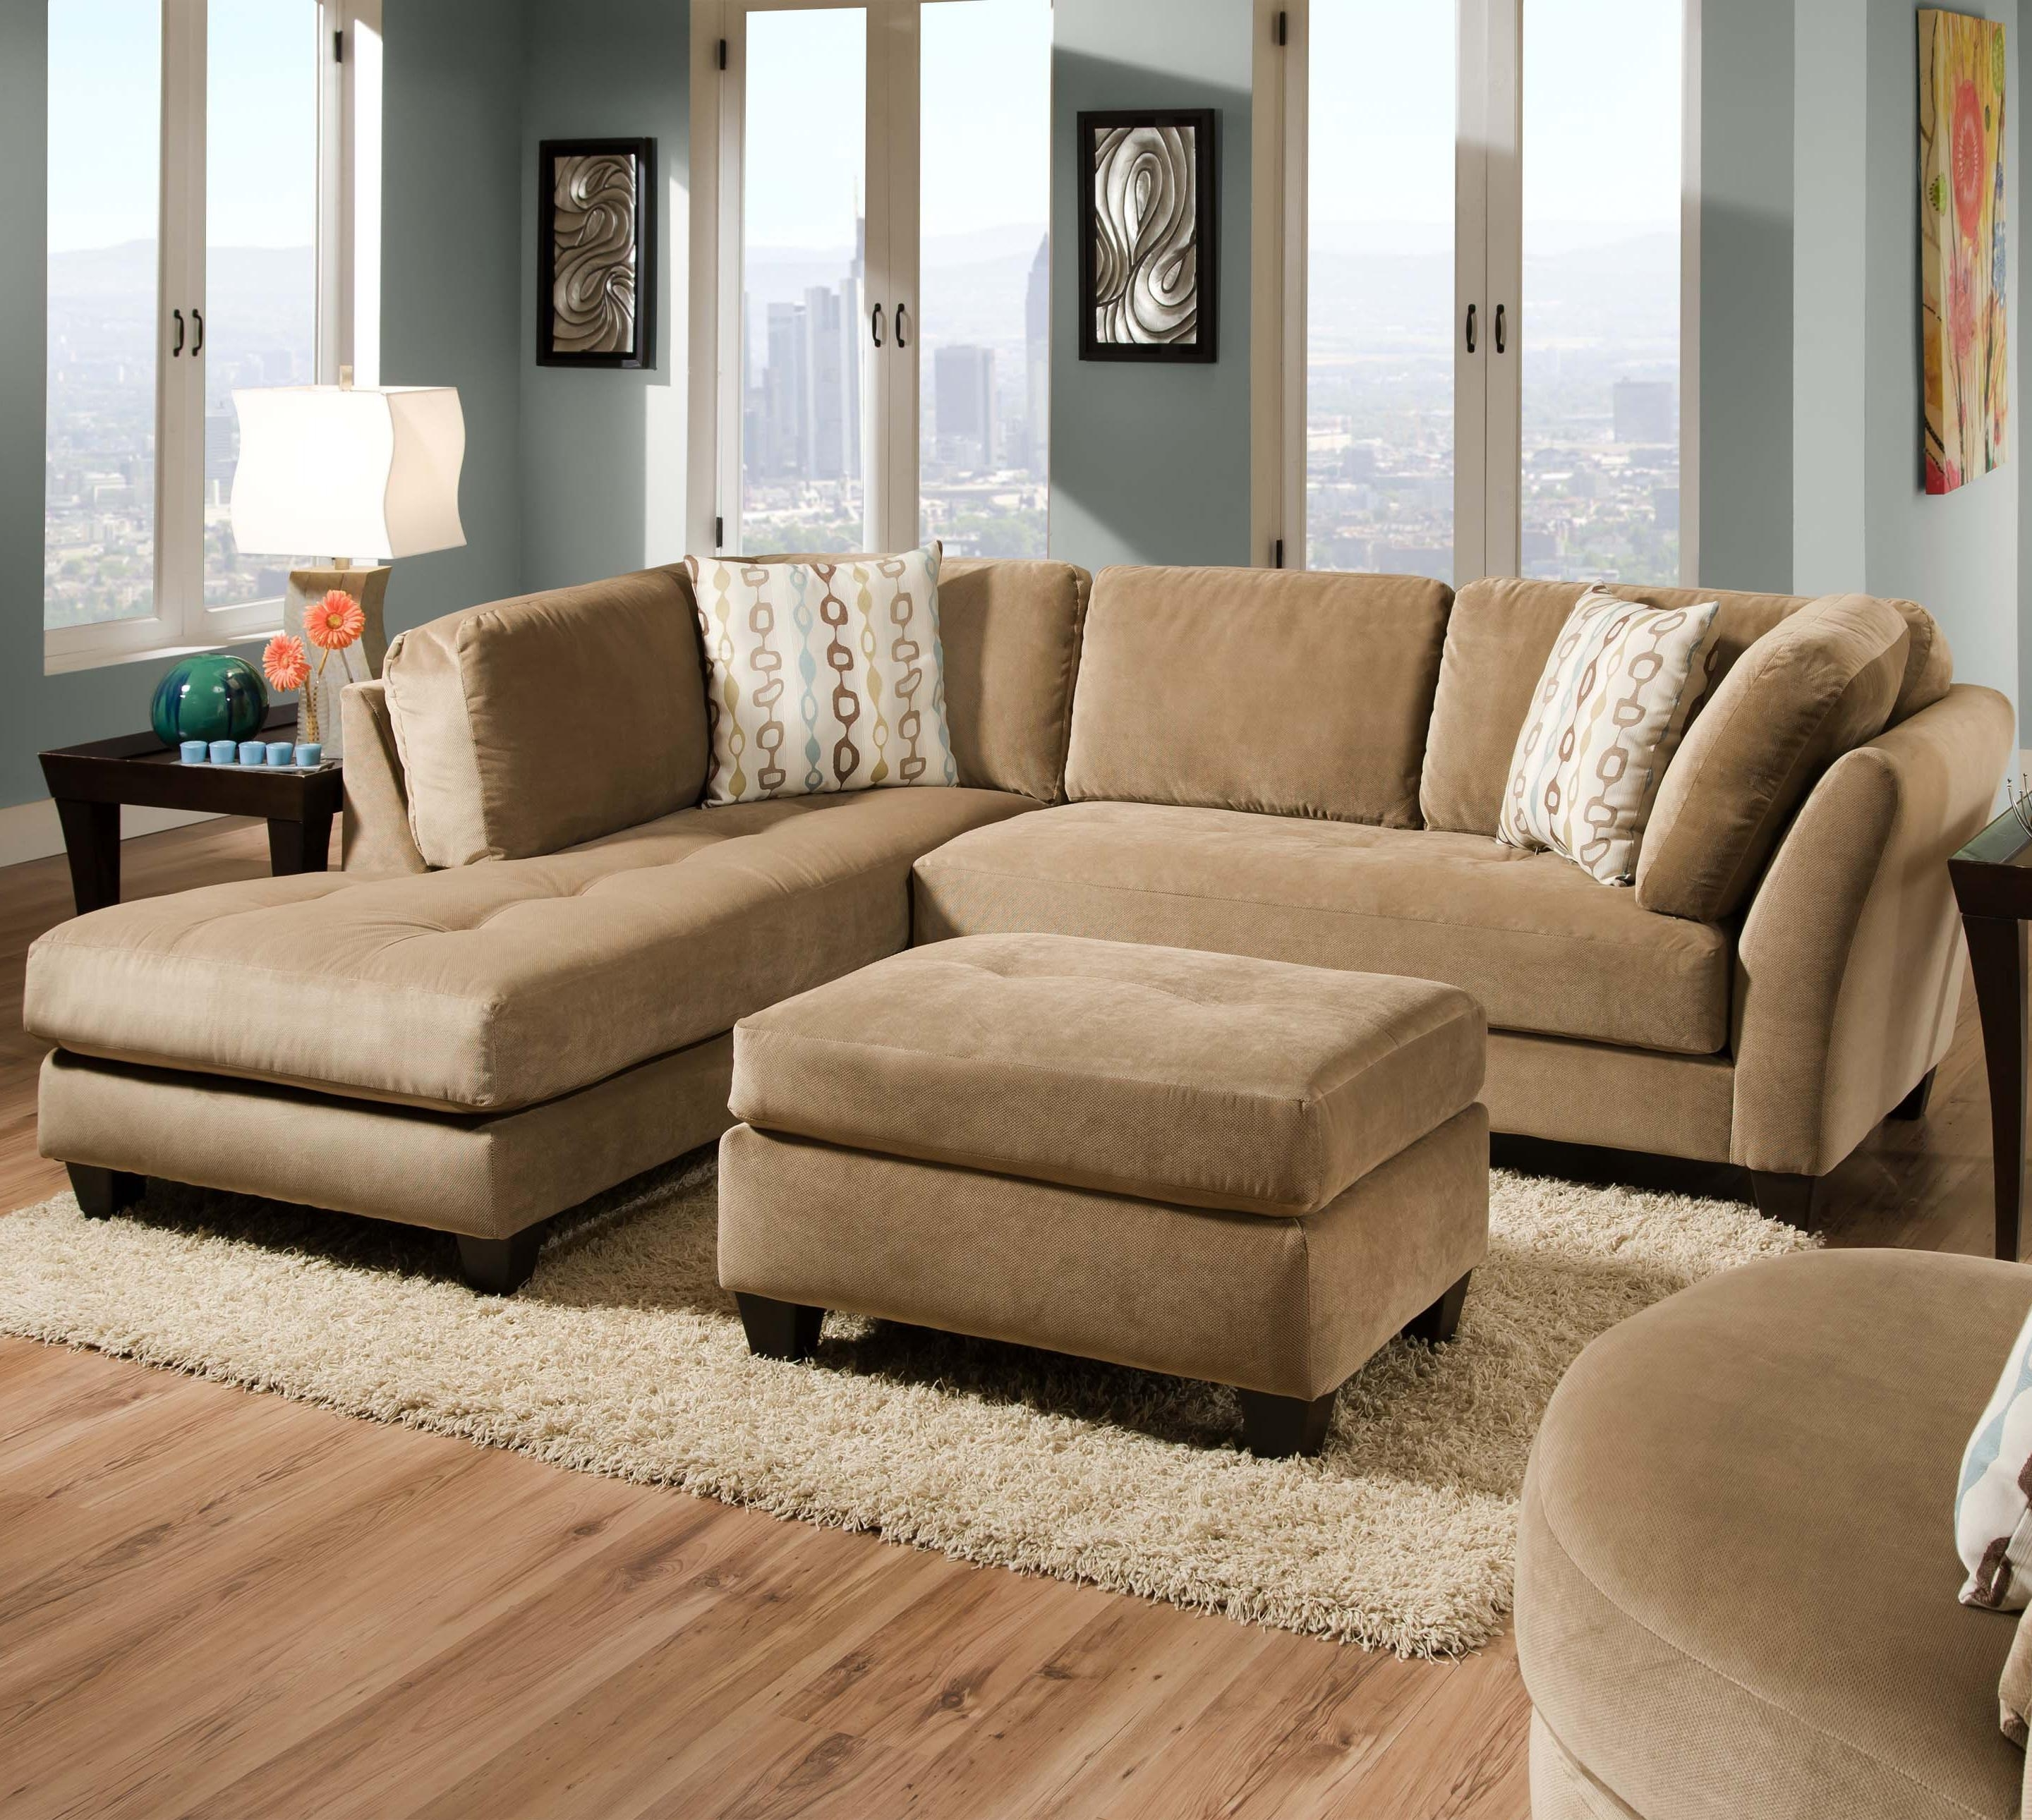 35B Slugger Mocha 2 Piece Sectionalcorinthian – Great American For Newest Memphis Tn Sectional Sofas (View 4 of 15)